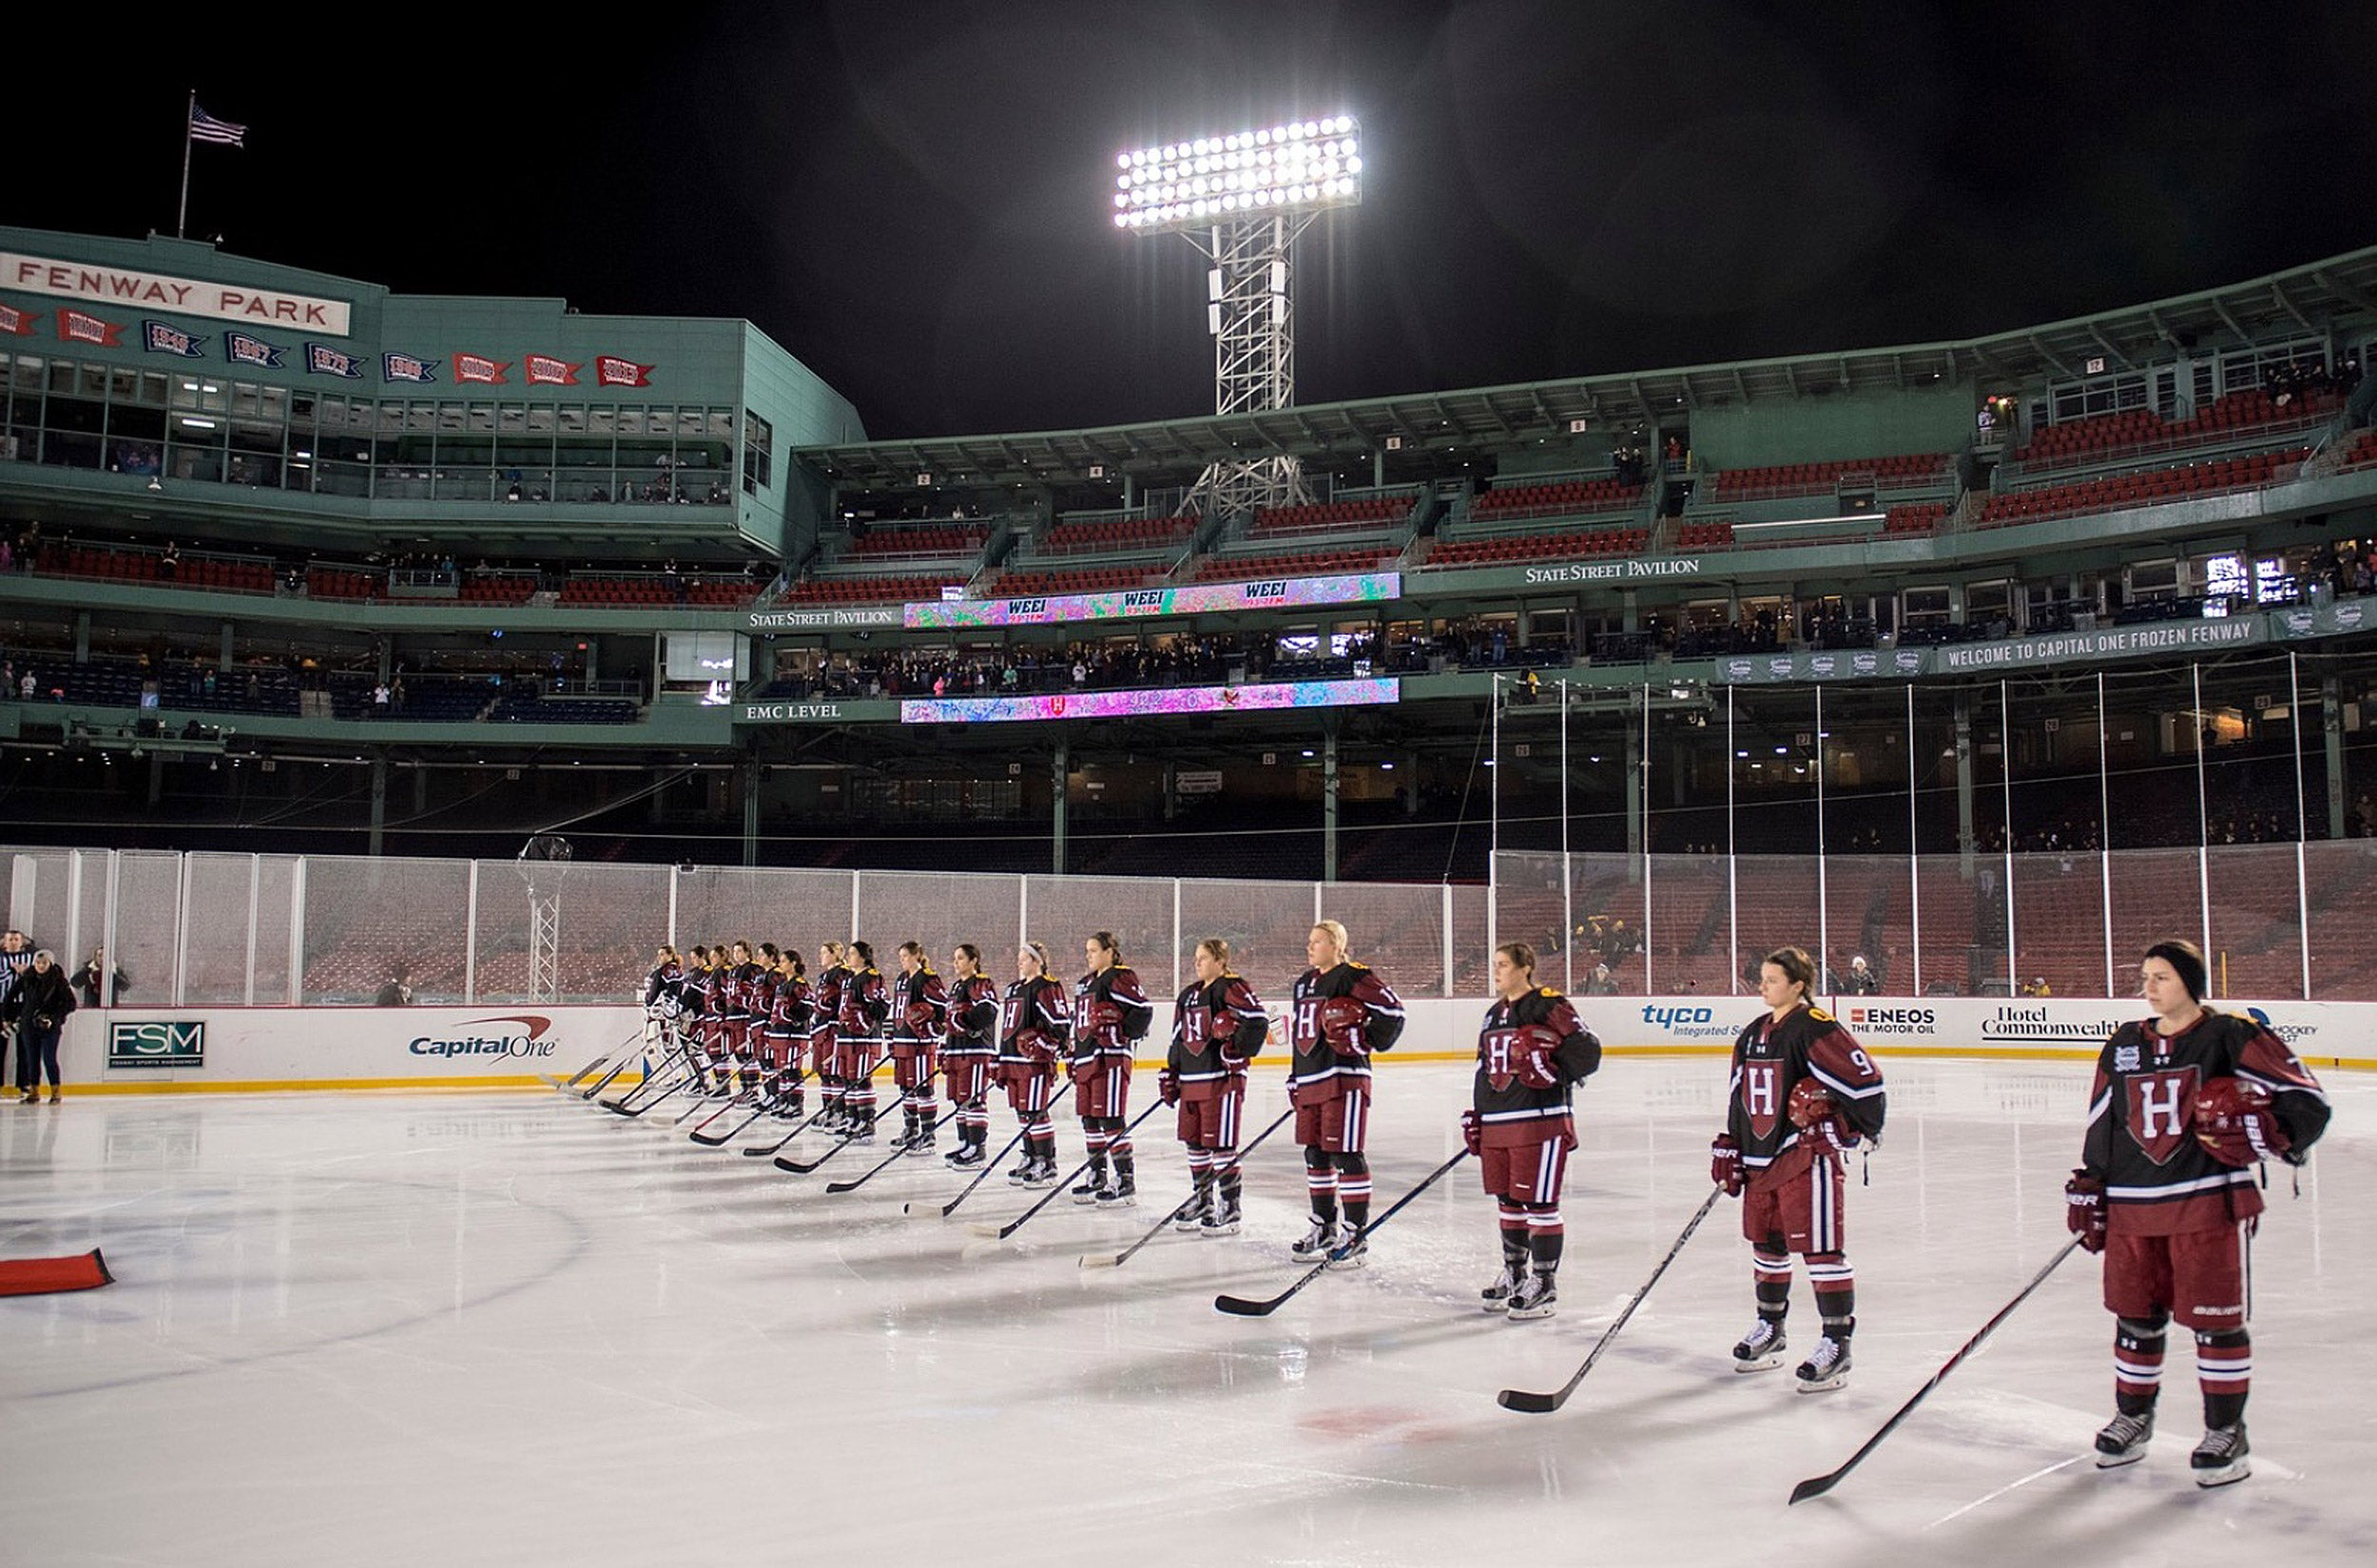 Harvard women's hockey at Fenway.